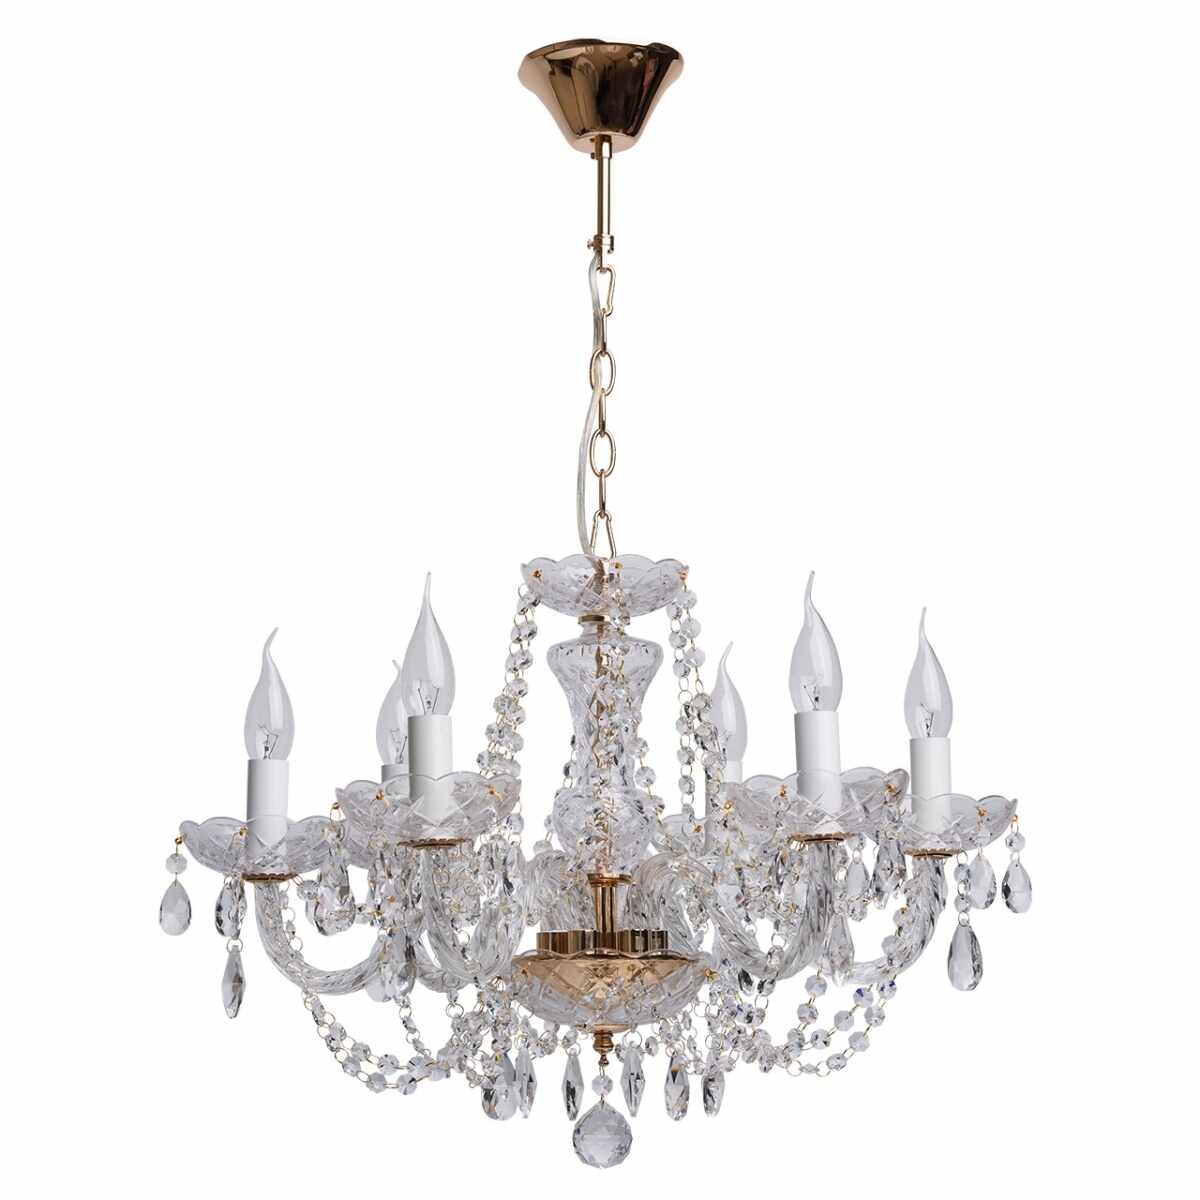 Candelabru MW-Light Crystal 367012606 la pret 1259 lei